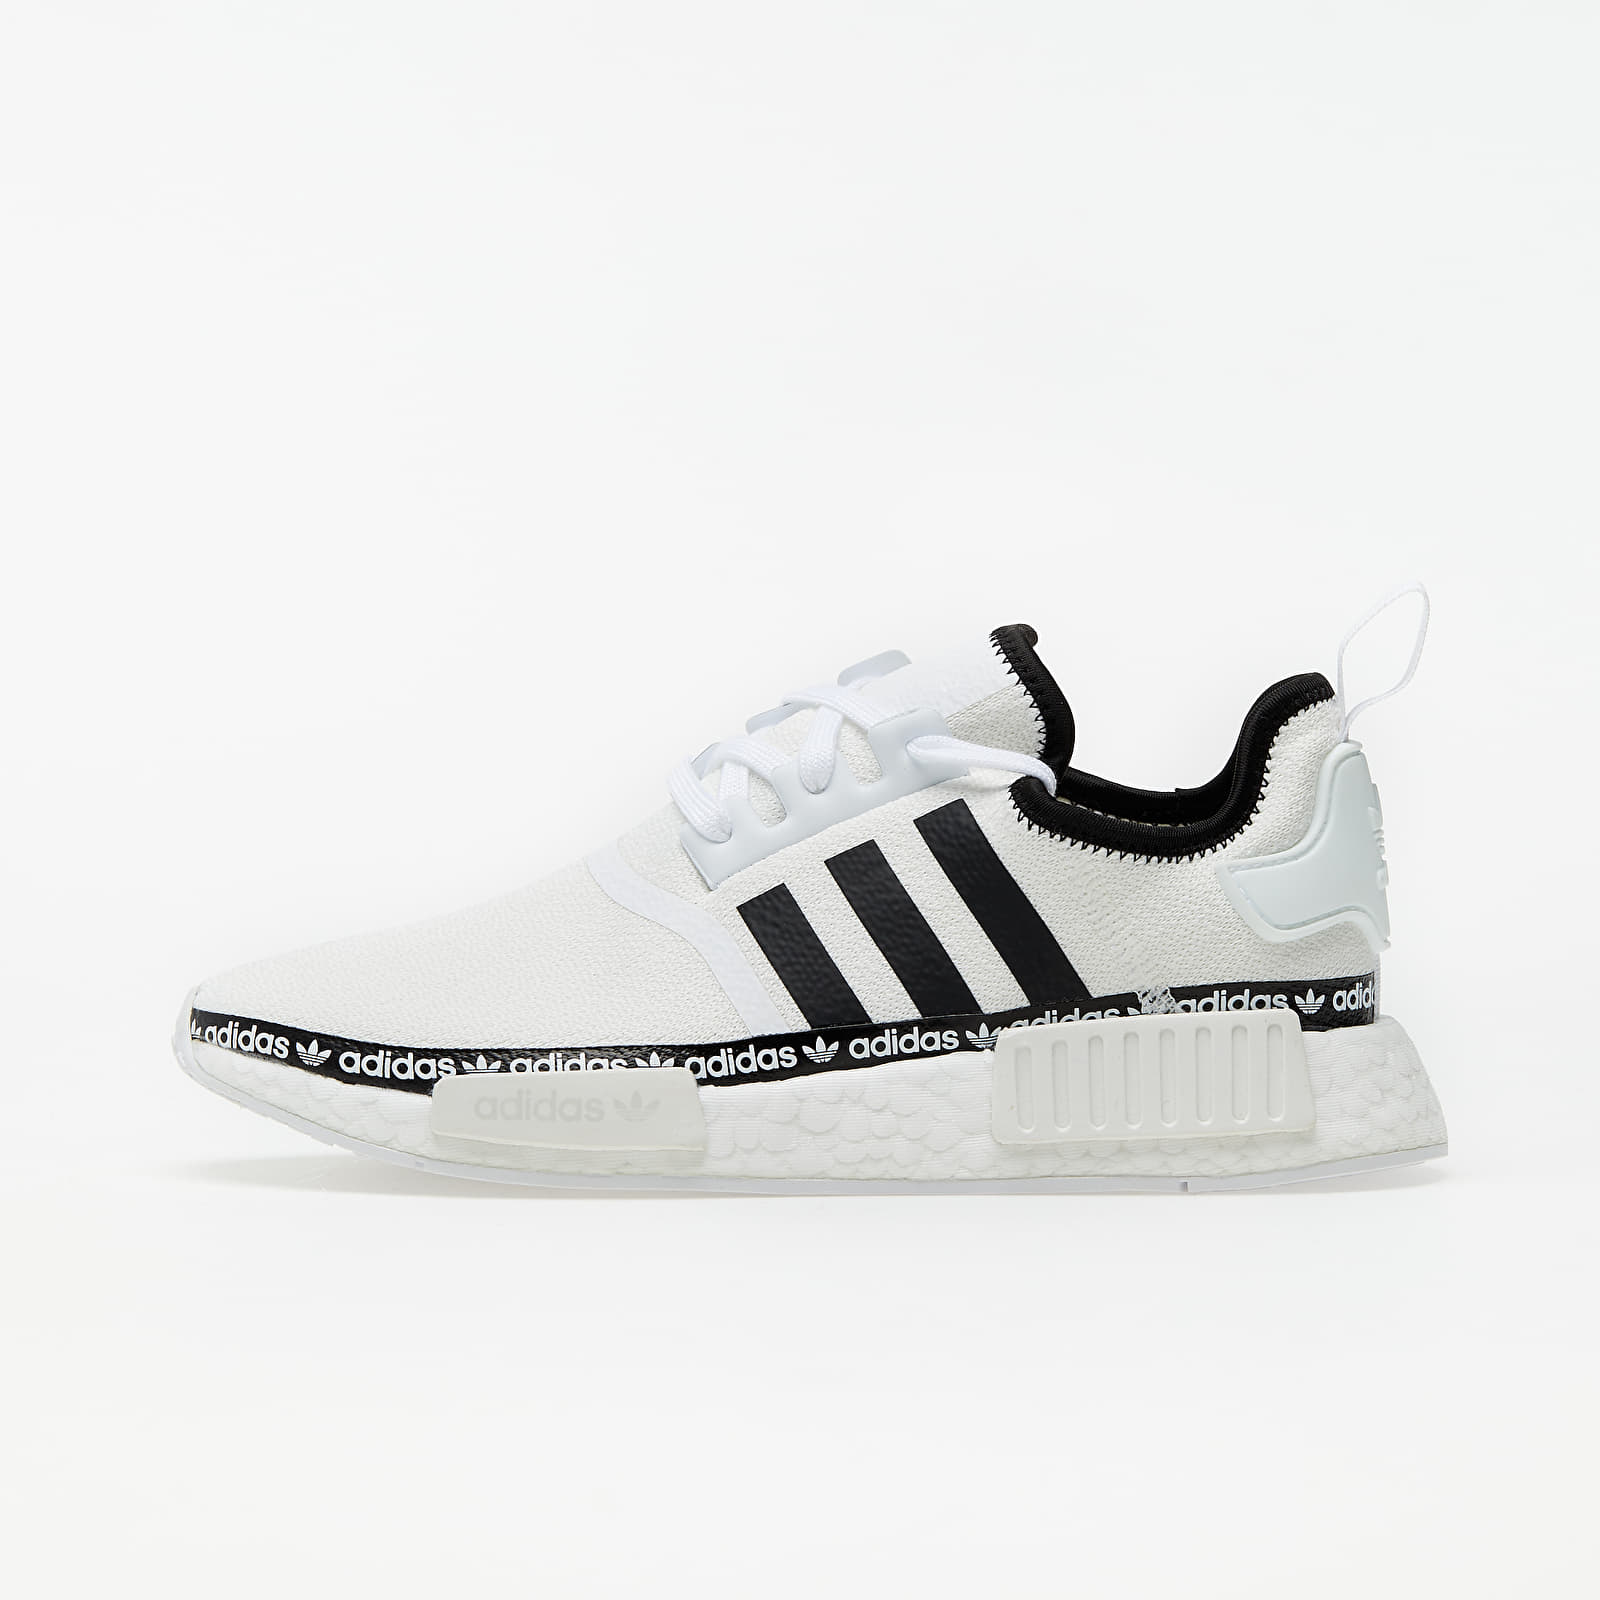 adidas NMD_R1 Ftw White/ Core Black/ Ftw White EUR 43 1/3